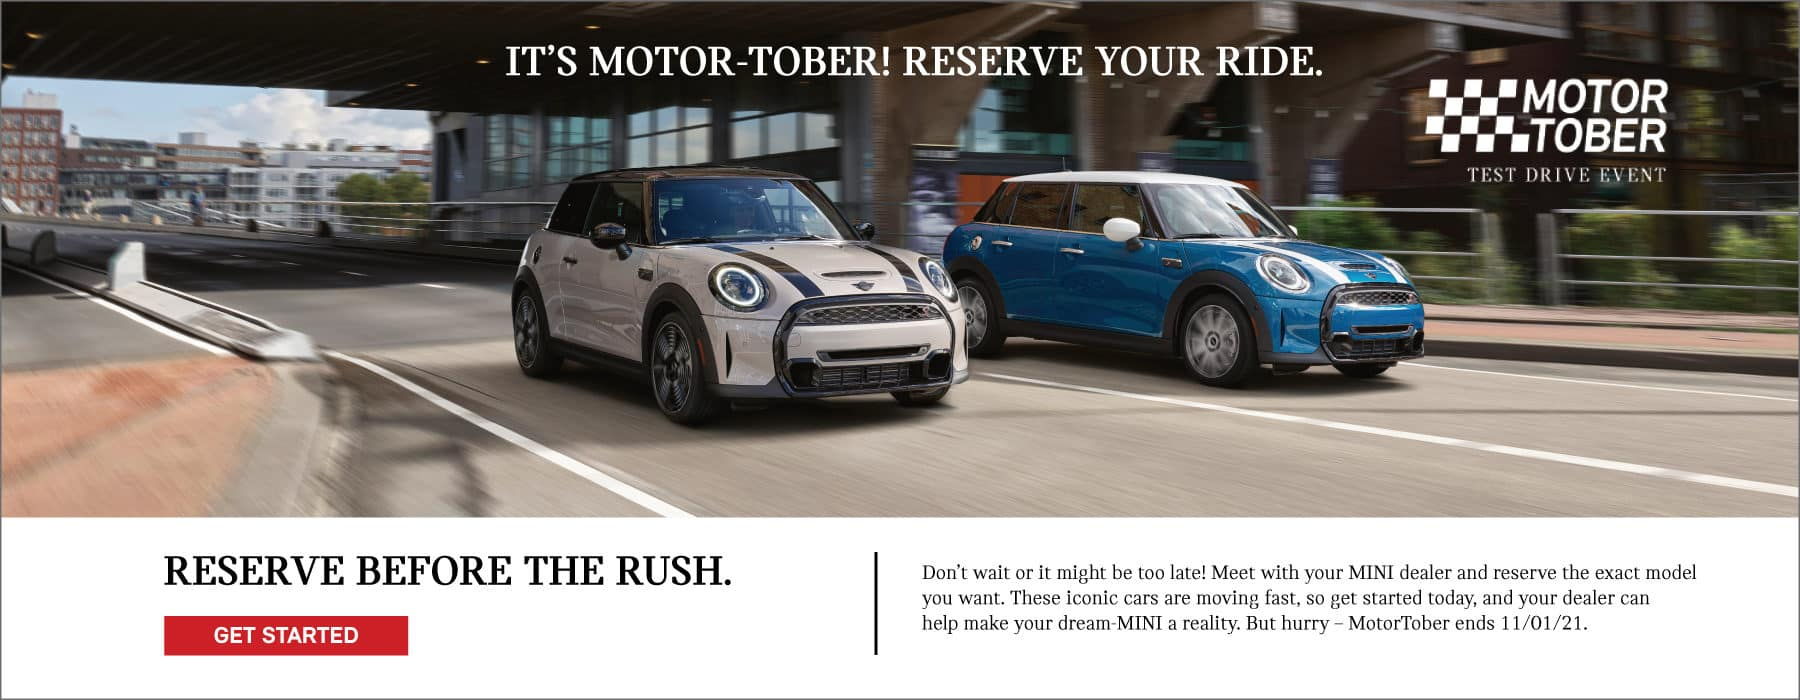 It's Motor-Tober! reserve your ride. Reserve before the rush. Dont wait or it might be too late! Meet with a MINI motoring advisor and reserve the exact model you want. These iconic cars are moving fast. Let us make your dream-MINI a reality. But hurry - MotorTober ends 11/01/21. Click to get started. Image shows two 2022 MINI vehicles driving down the street. MotorTober Test Drive Event logo is placed over the image.